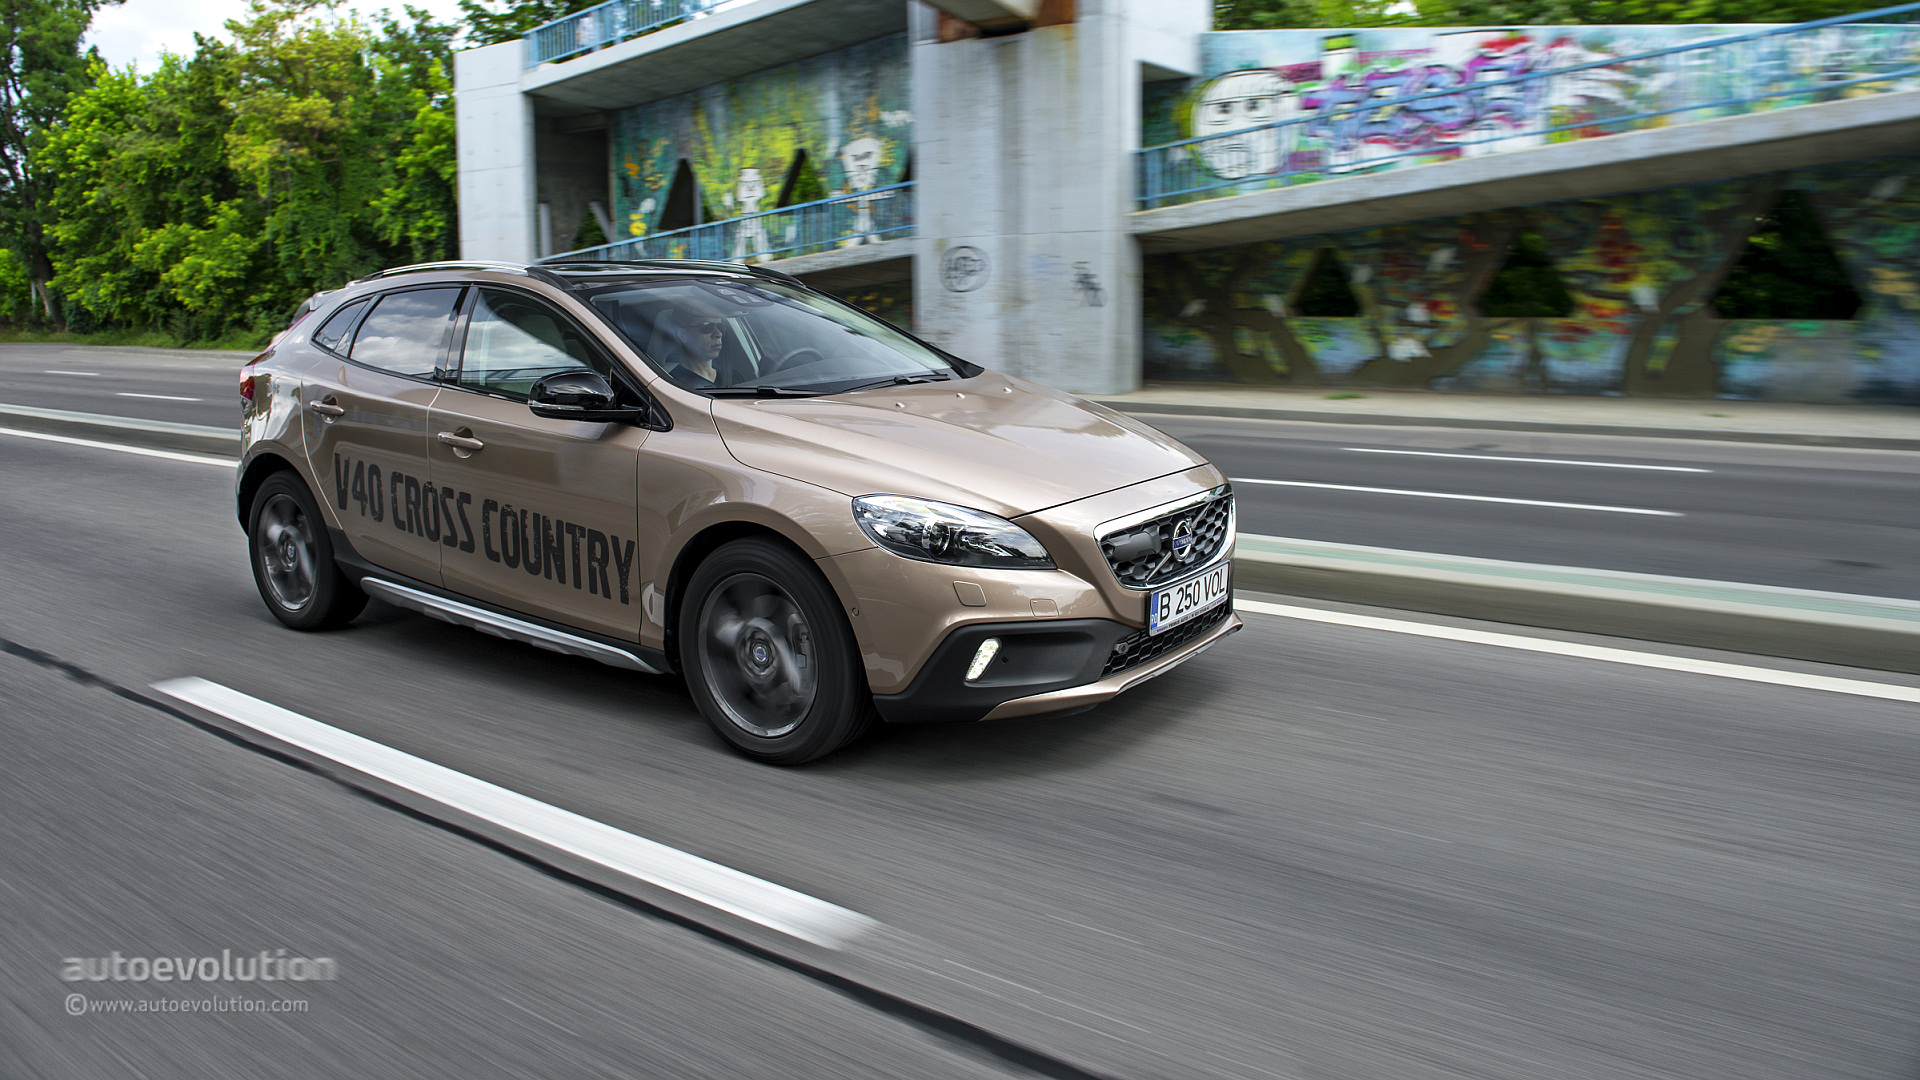 VOLVO V40 Cross Country Review (Technical Data